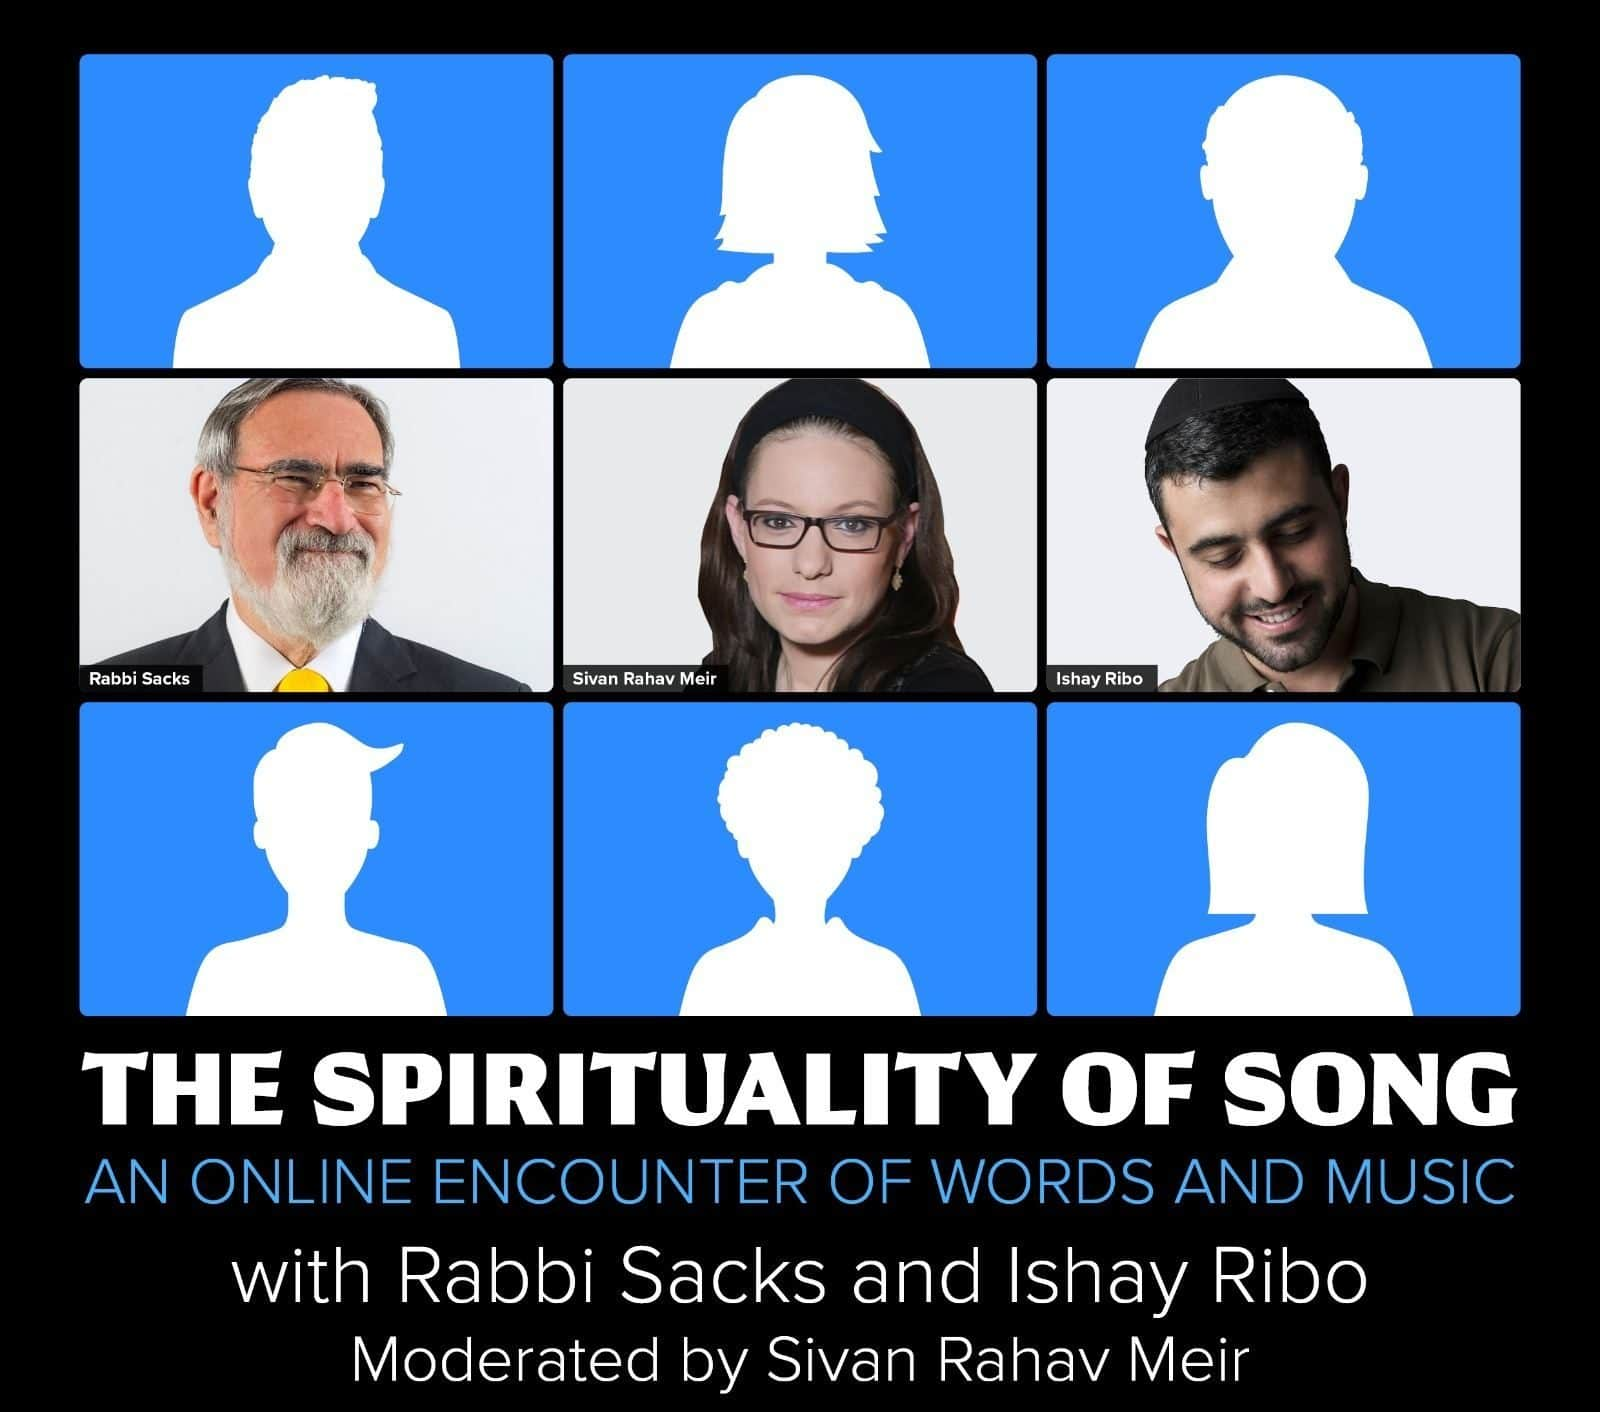 The spirituality of songs – An online encounter of words and music with Rabbi Sacks and Ishay Ribo